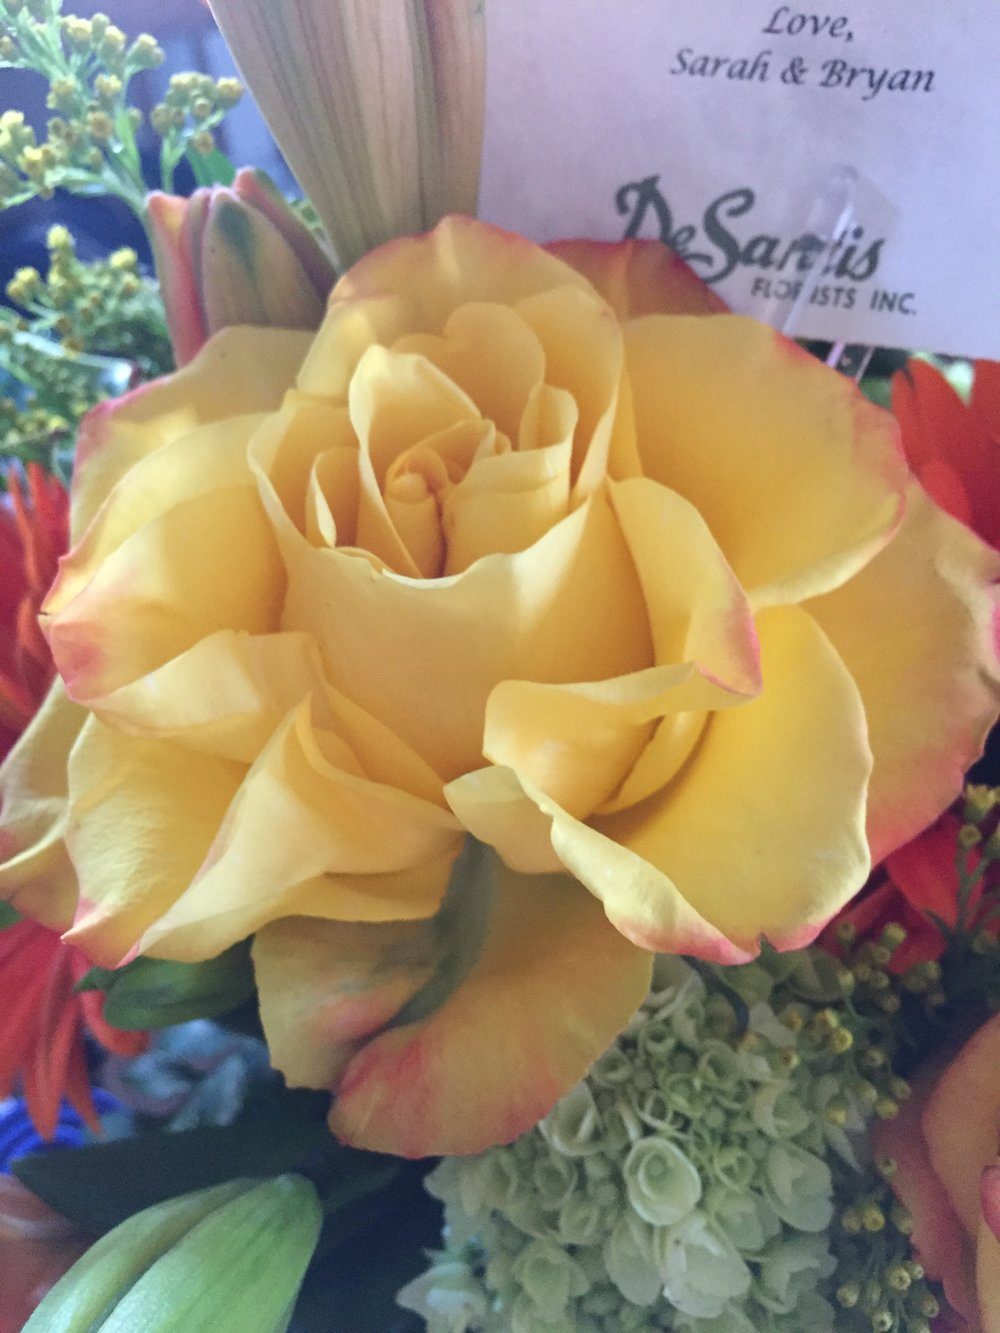 A gorgeous rose from the bouquet my brother and sister in law sent me, celebrating the book!